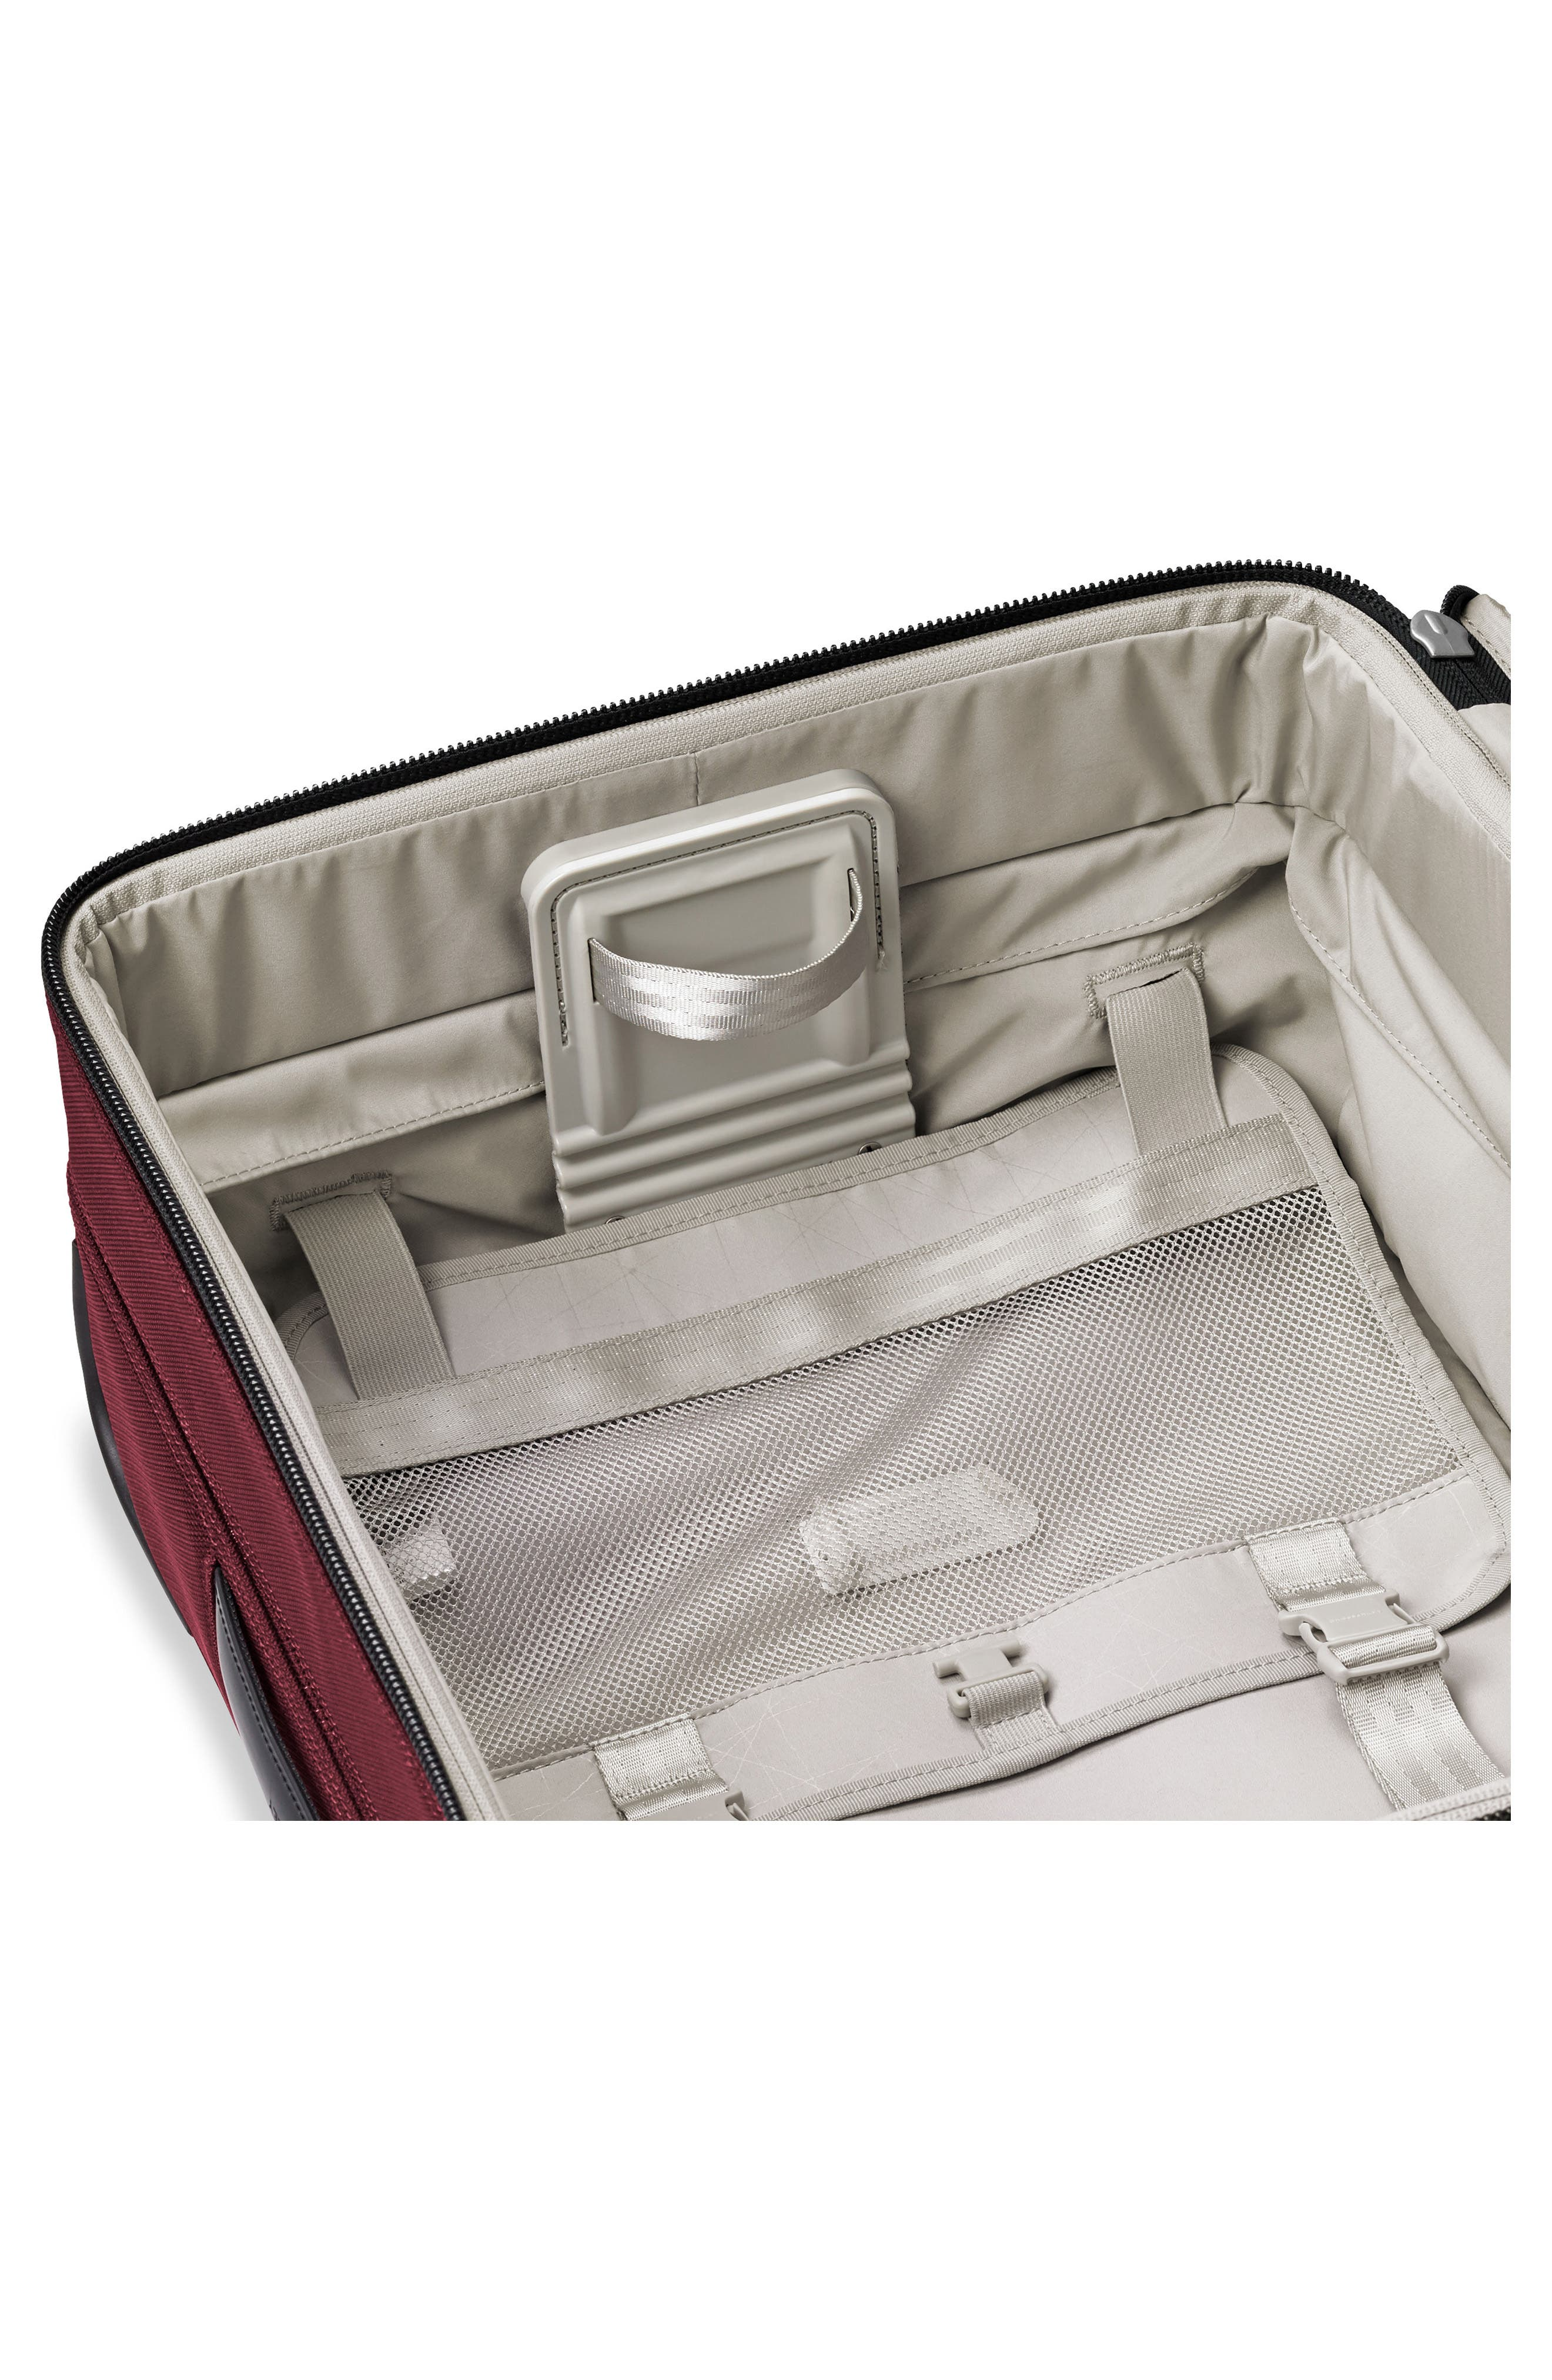 BRIGGS & RILEY, Transcend VX Tall Expandable 22-Inch Spinner Suitcase, Alternate thumbnail 5, color, MERLOT RED